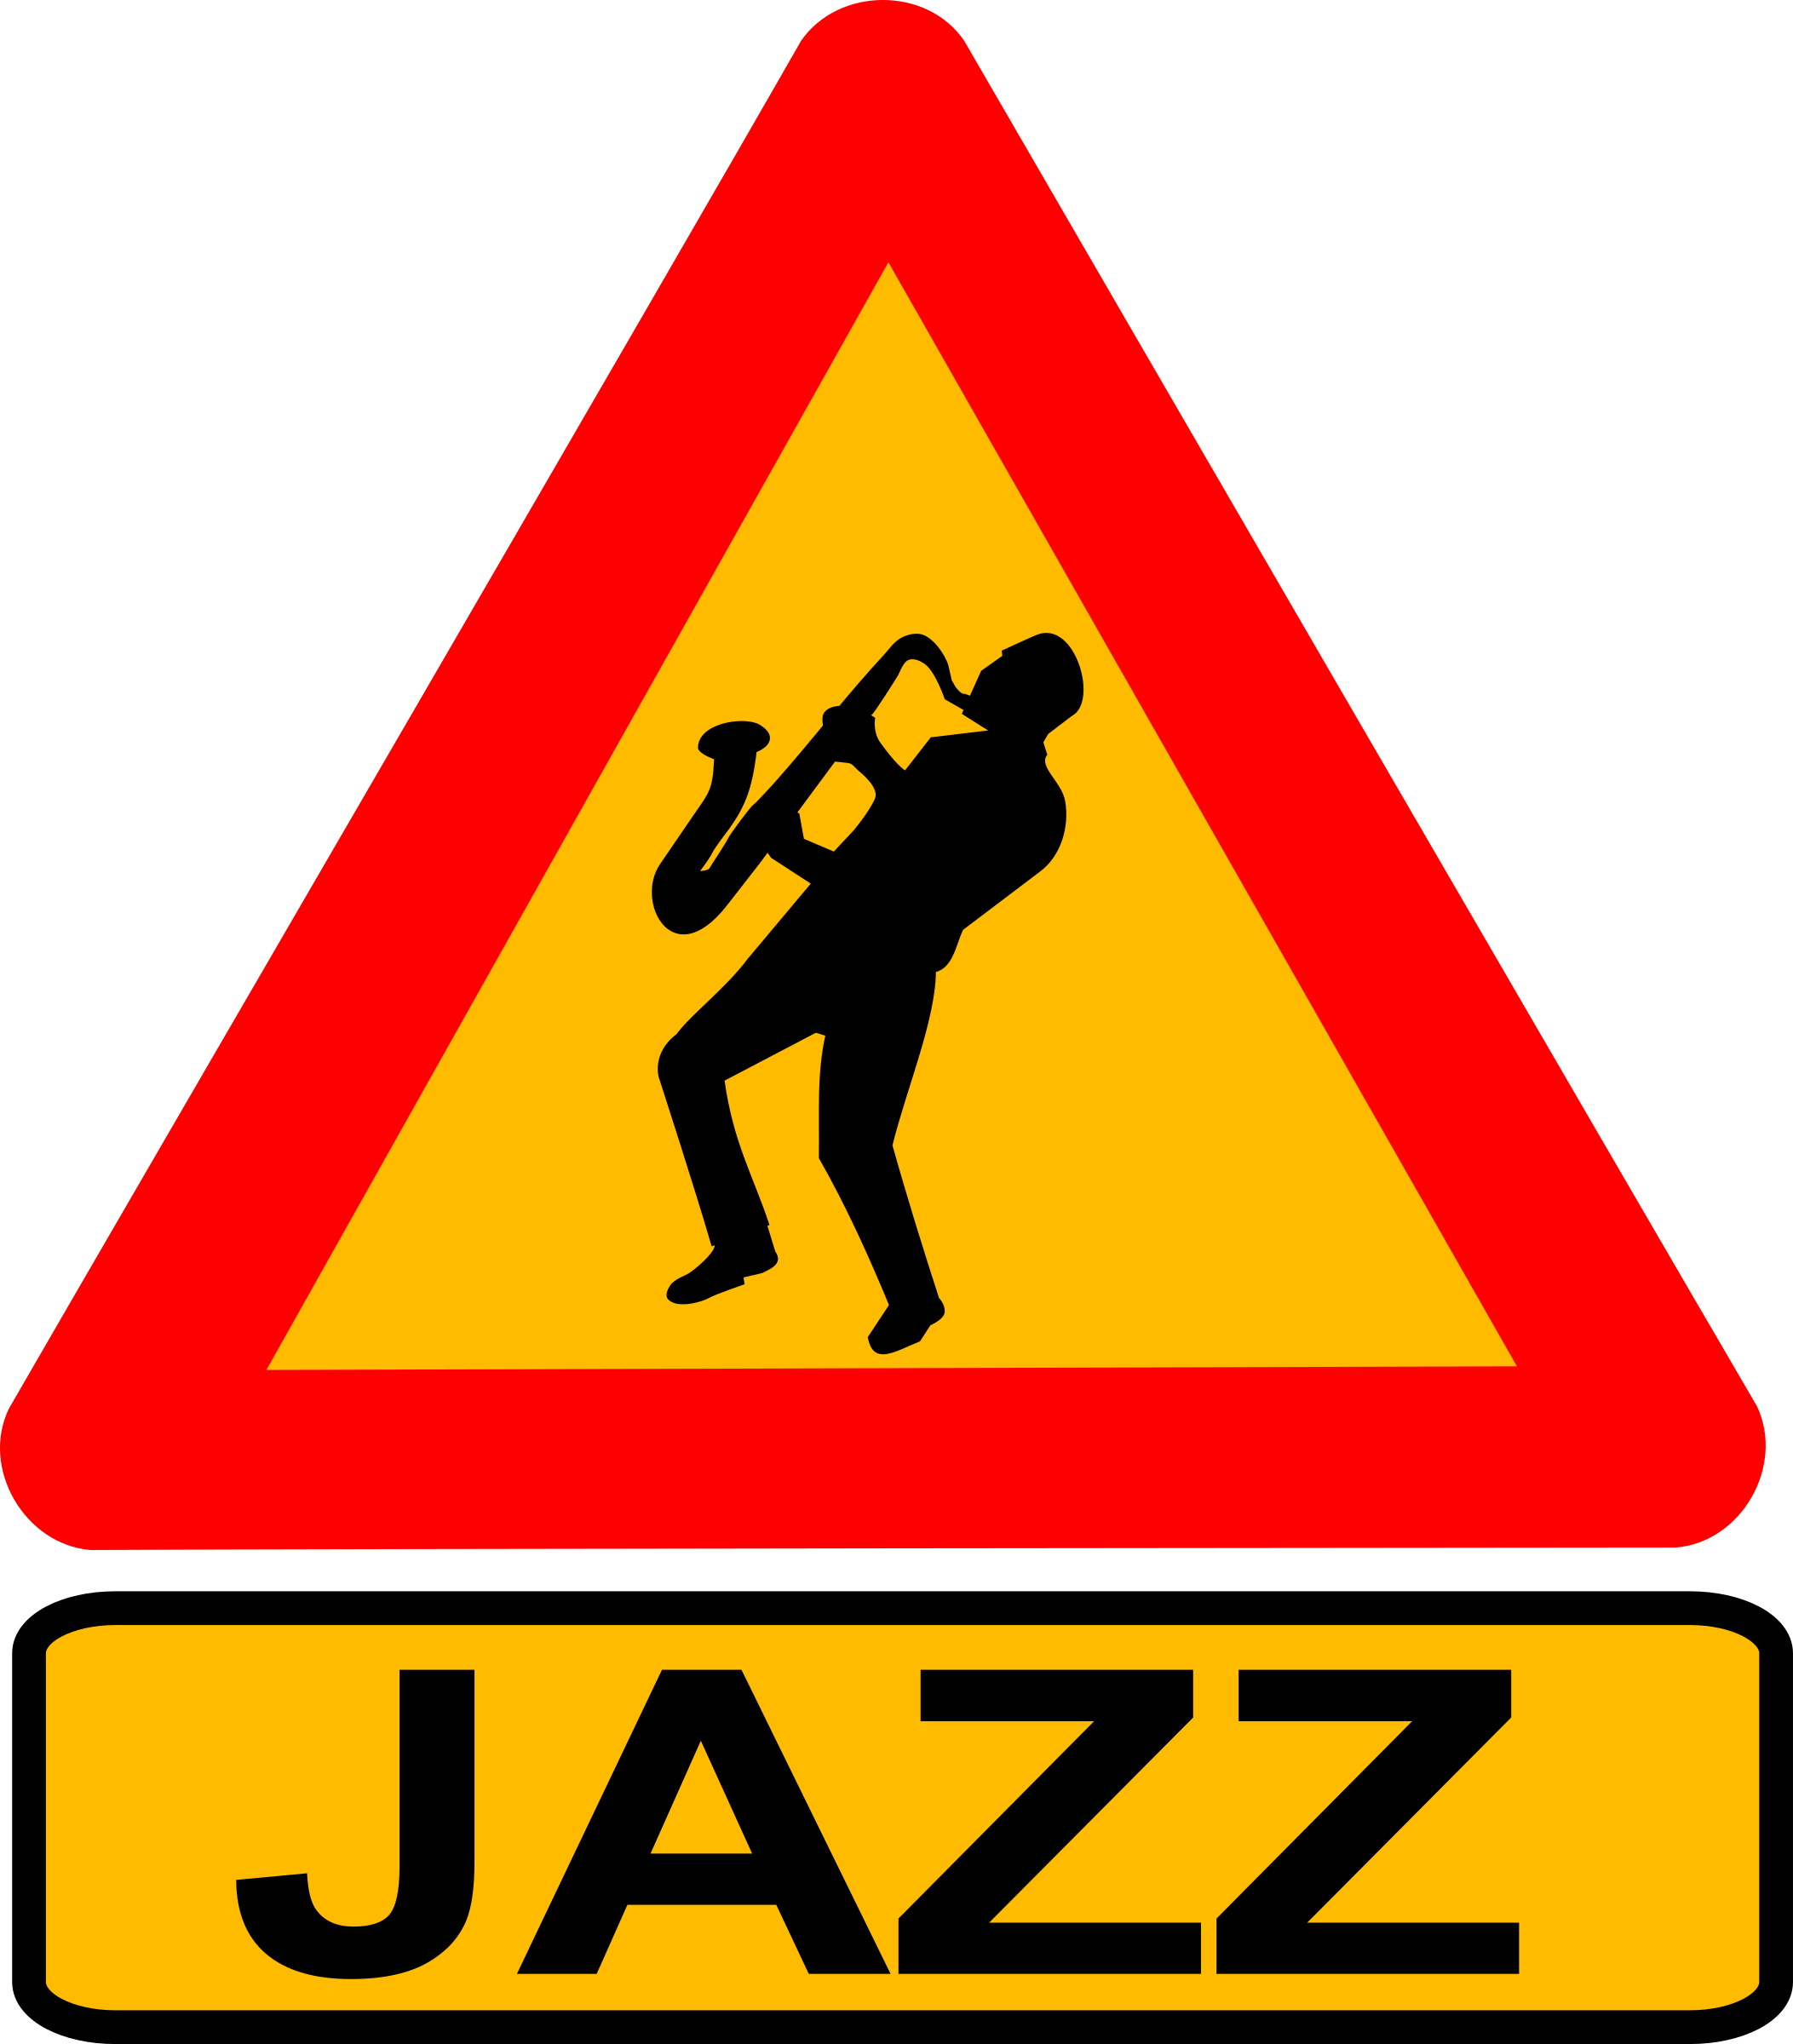 Caution jazz by dominiquechappard